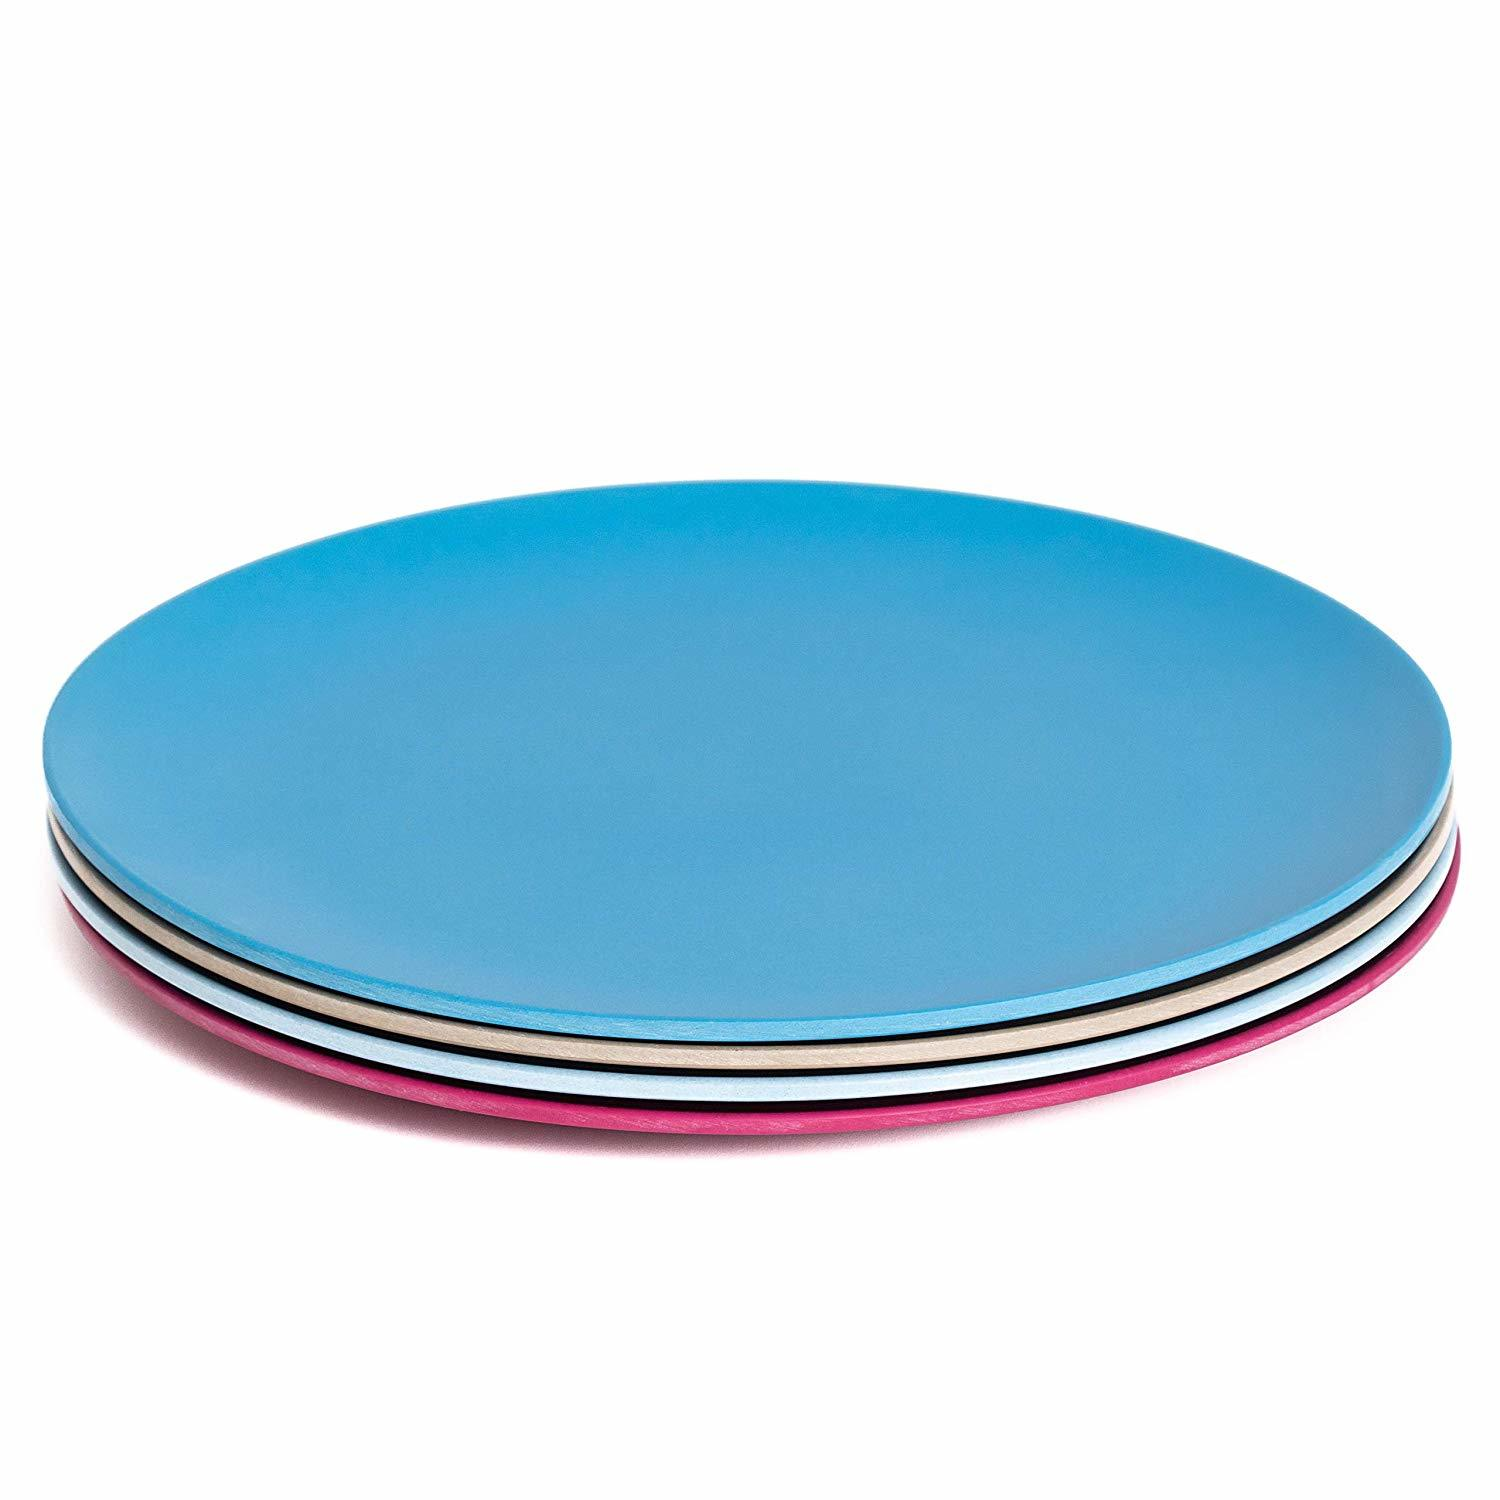 cff Bamboo Baby Plate Toddler Bowls and Plates Childrens Plates Car Design Eco Friendly BPA Free